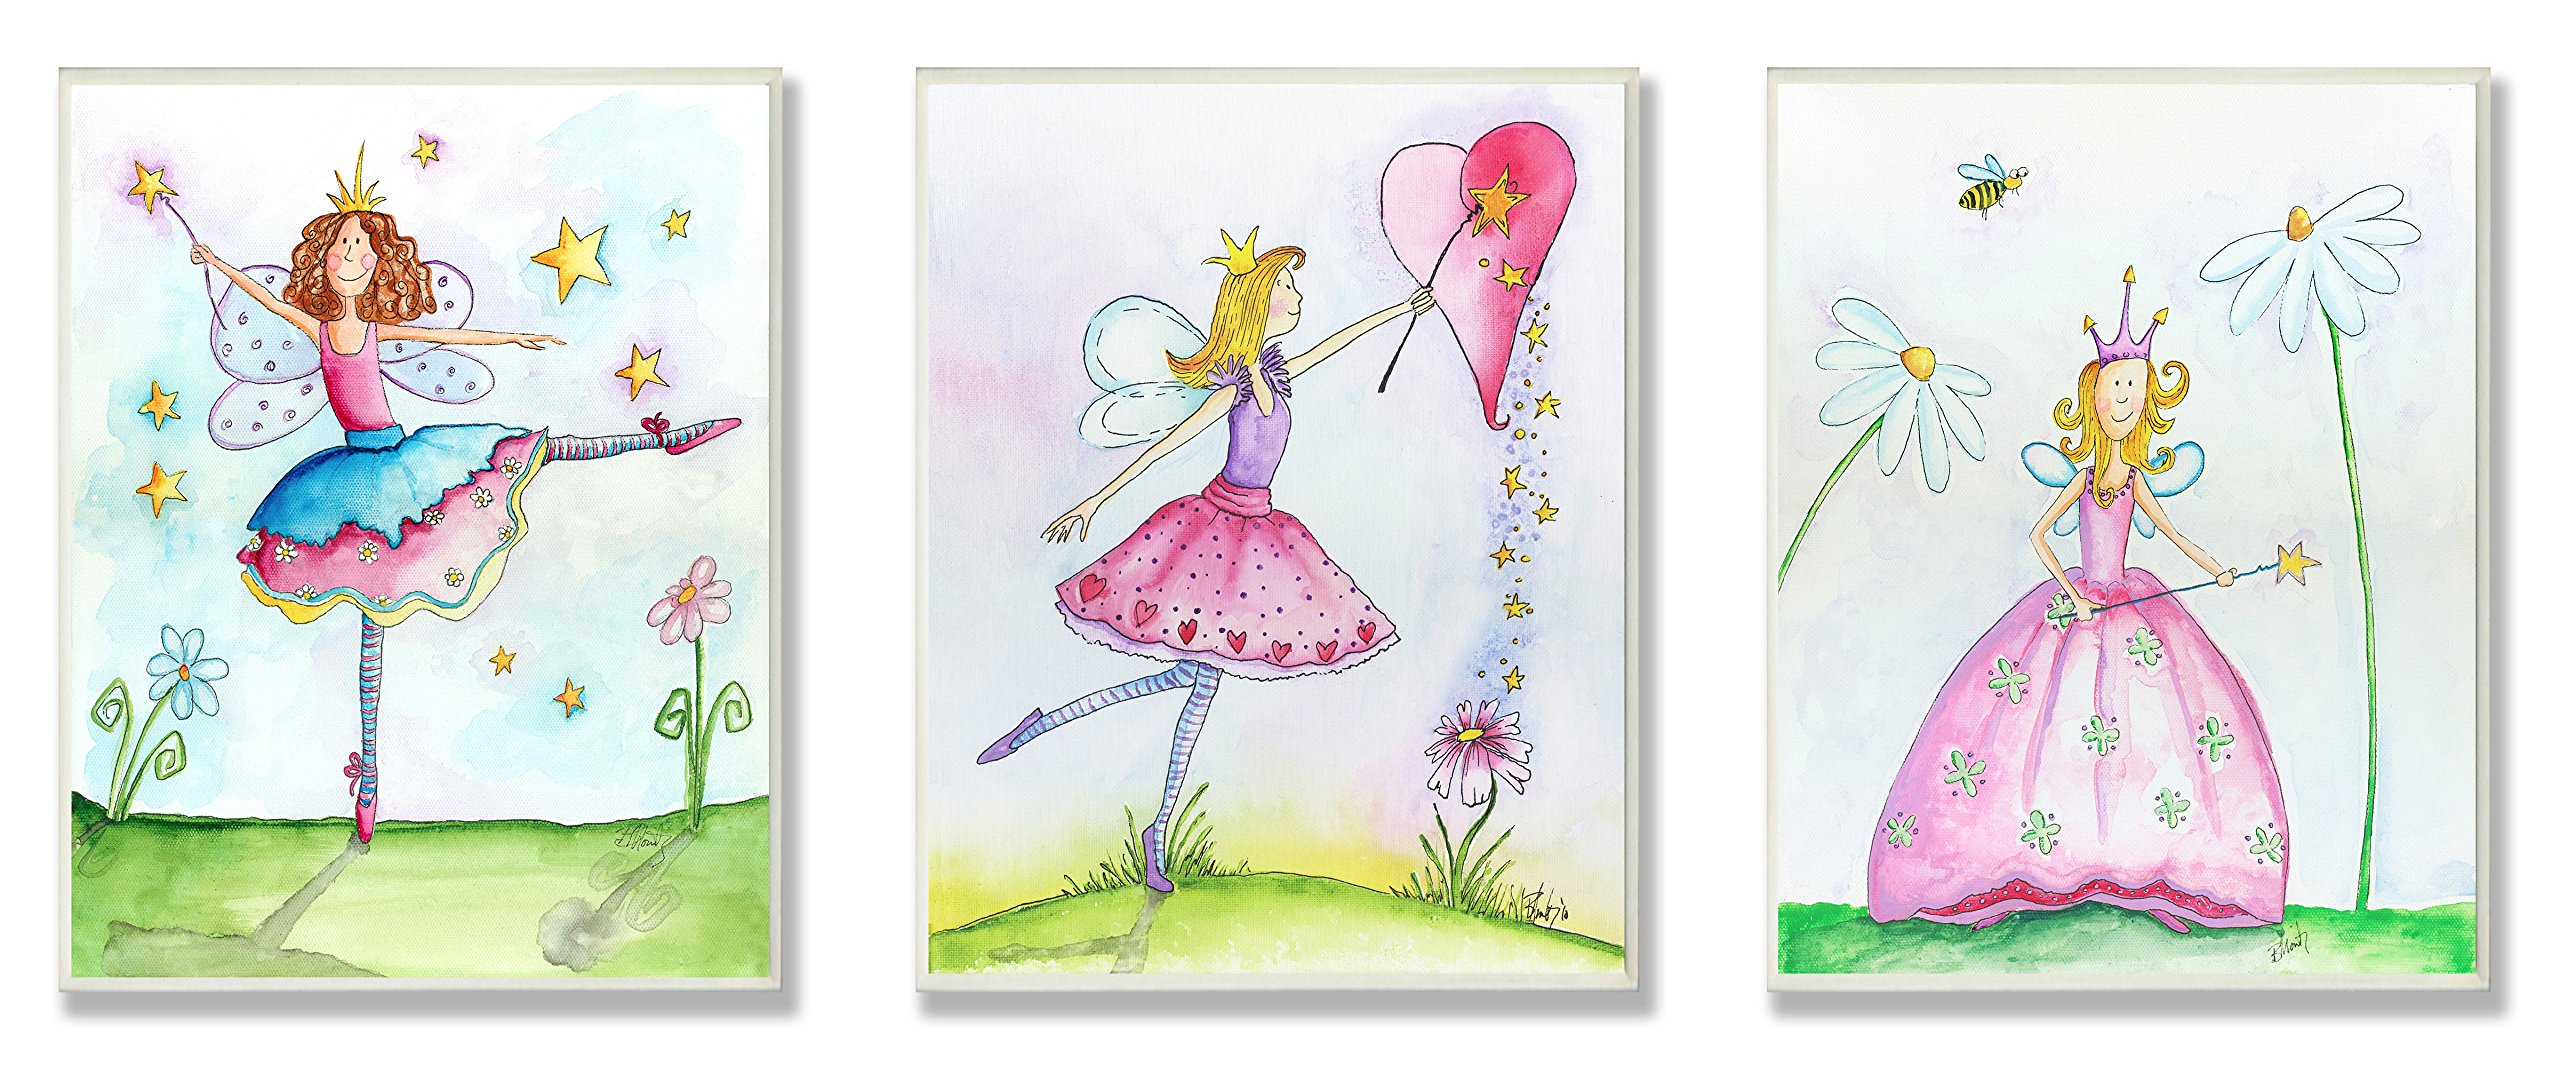 The Kids Room by Stupell Princess Fairies 3-Pc Wall Plaque Set